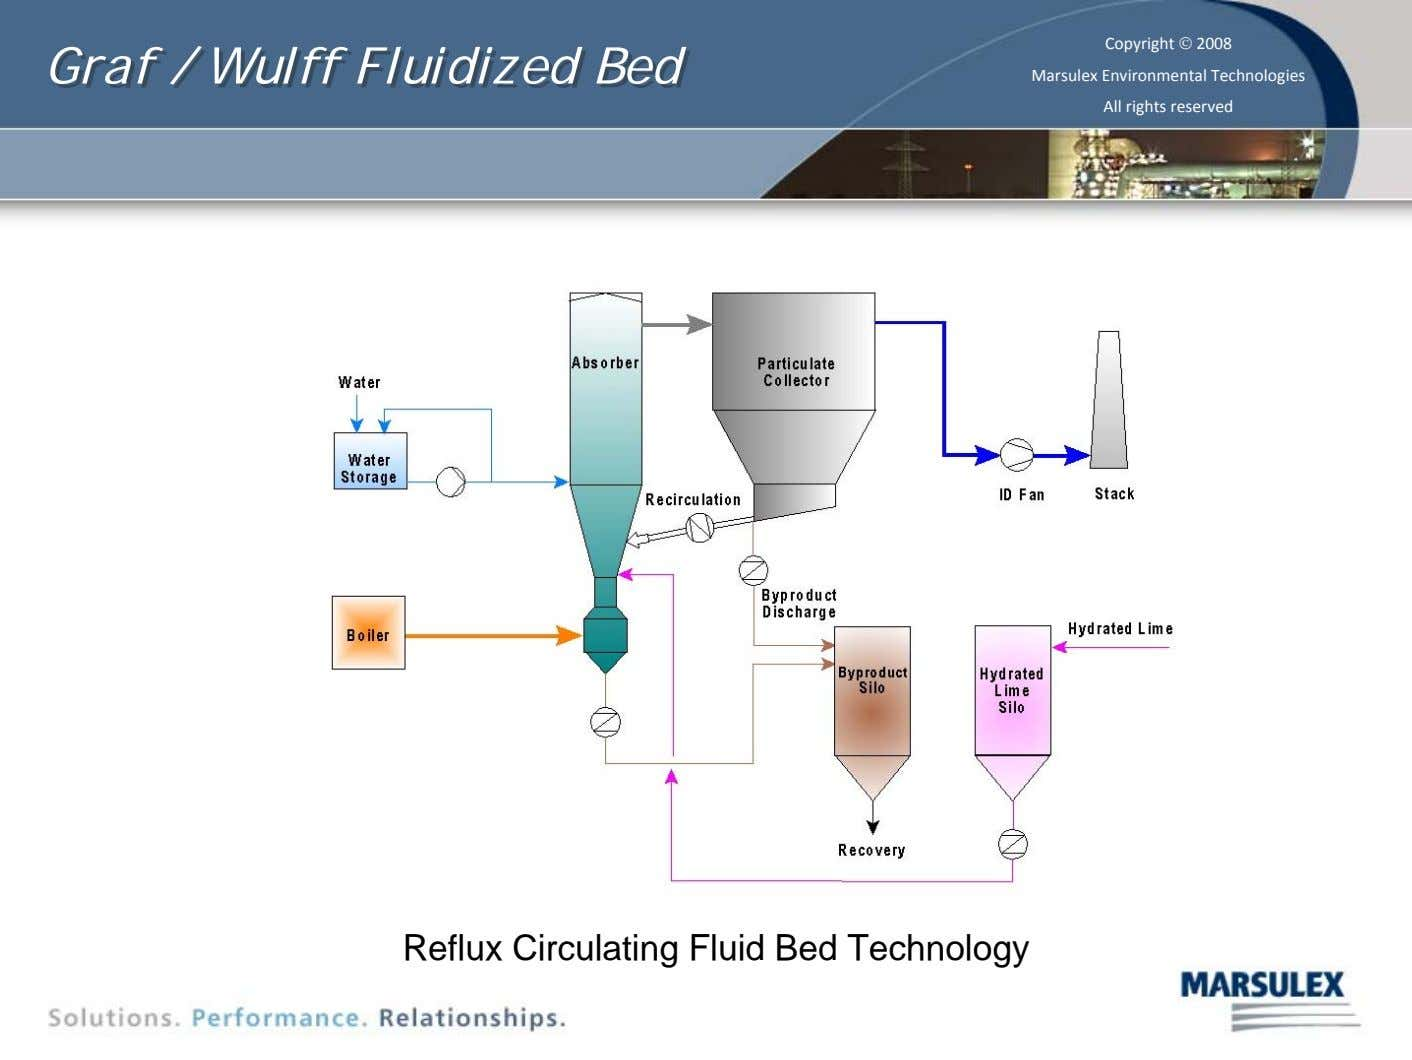 Graf Graf // Wulff Wulff Fluidized Fluidized Bed Bed Copyright © 2008 Marsulex Environmental Technologies All